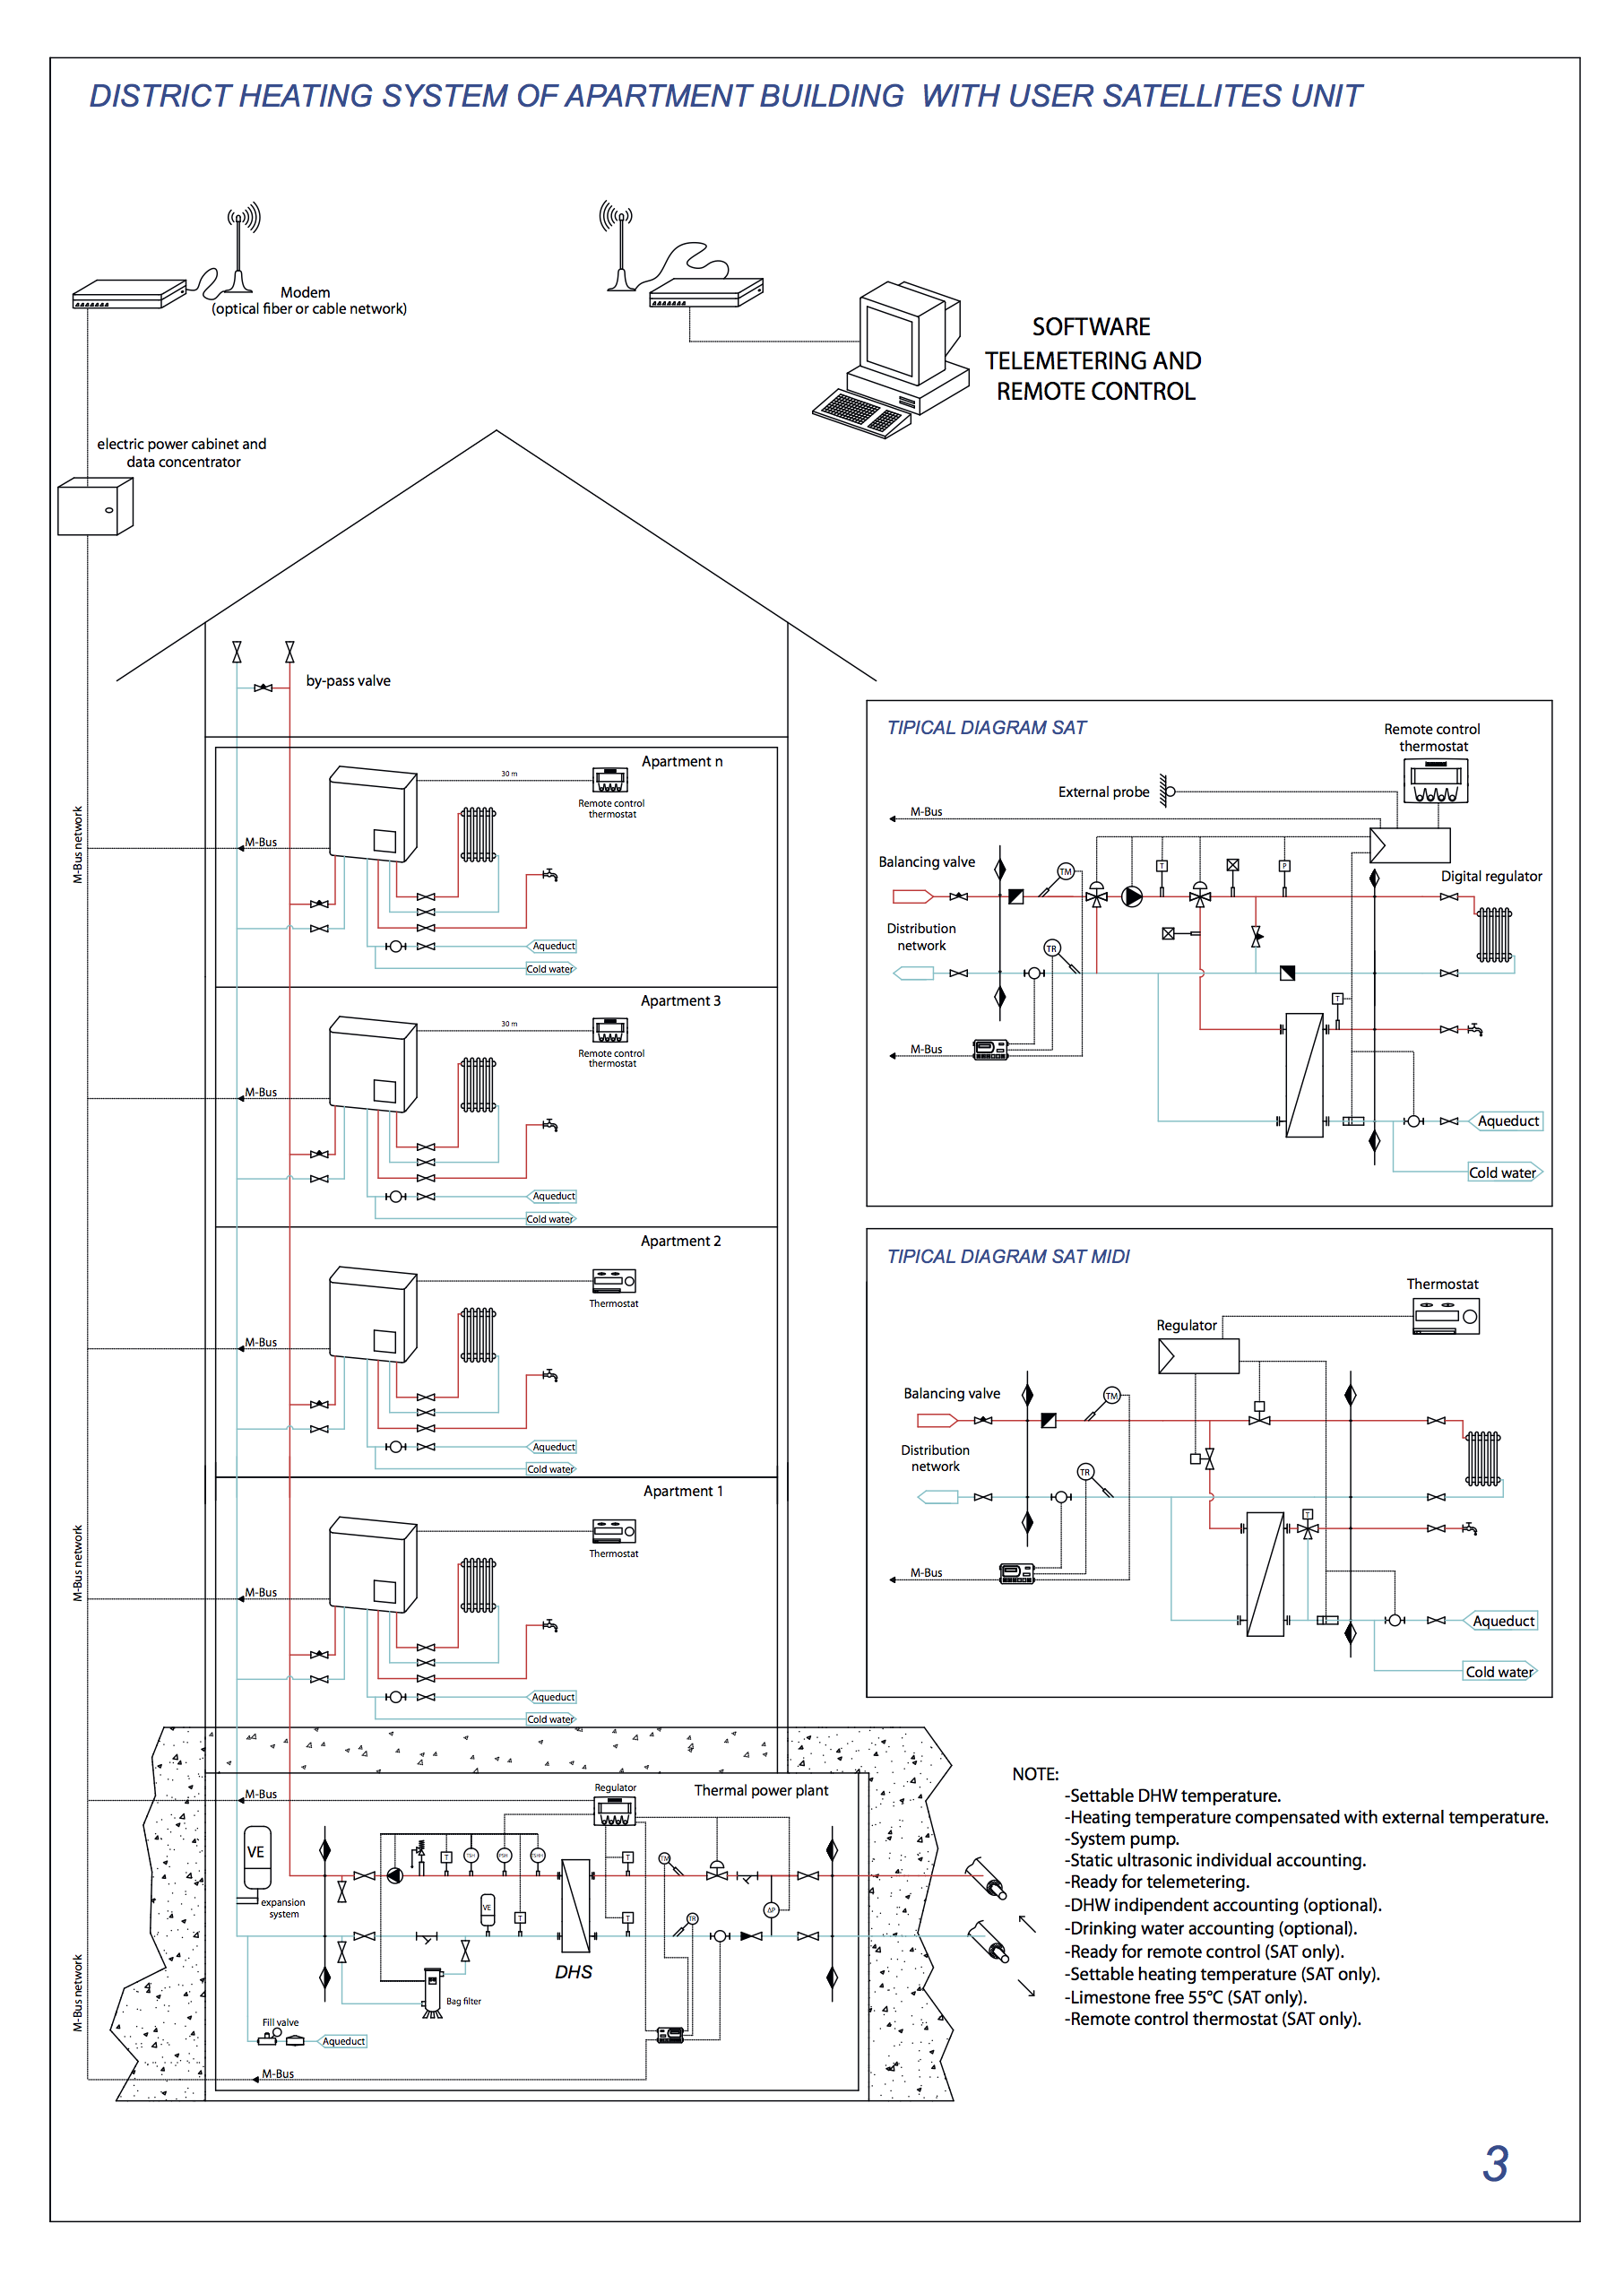 DISTRICT HEATING SYSTEM OF APARTMENT BUILDING WITH USER SATELLITES UNIT